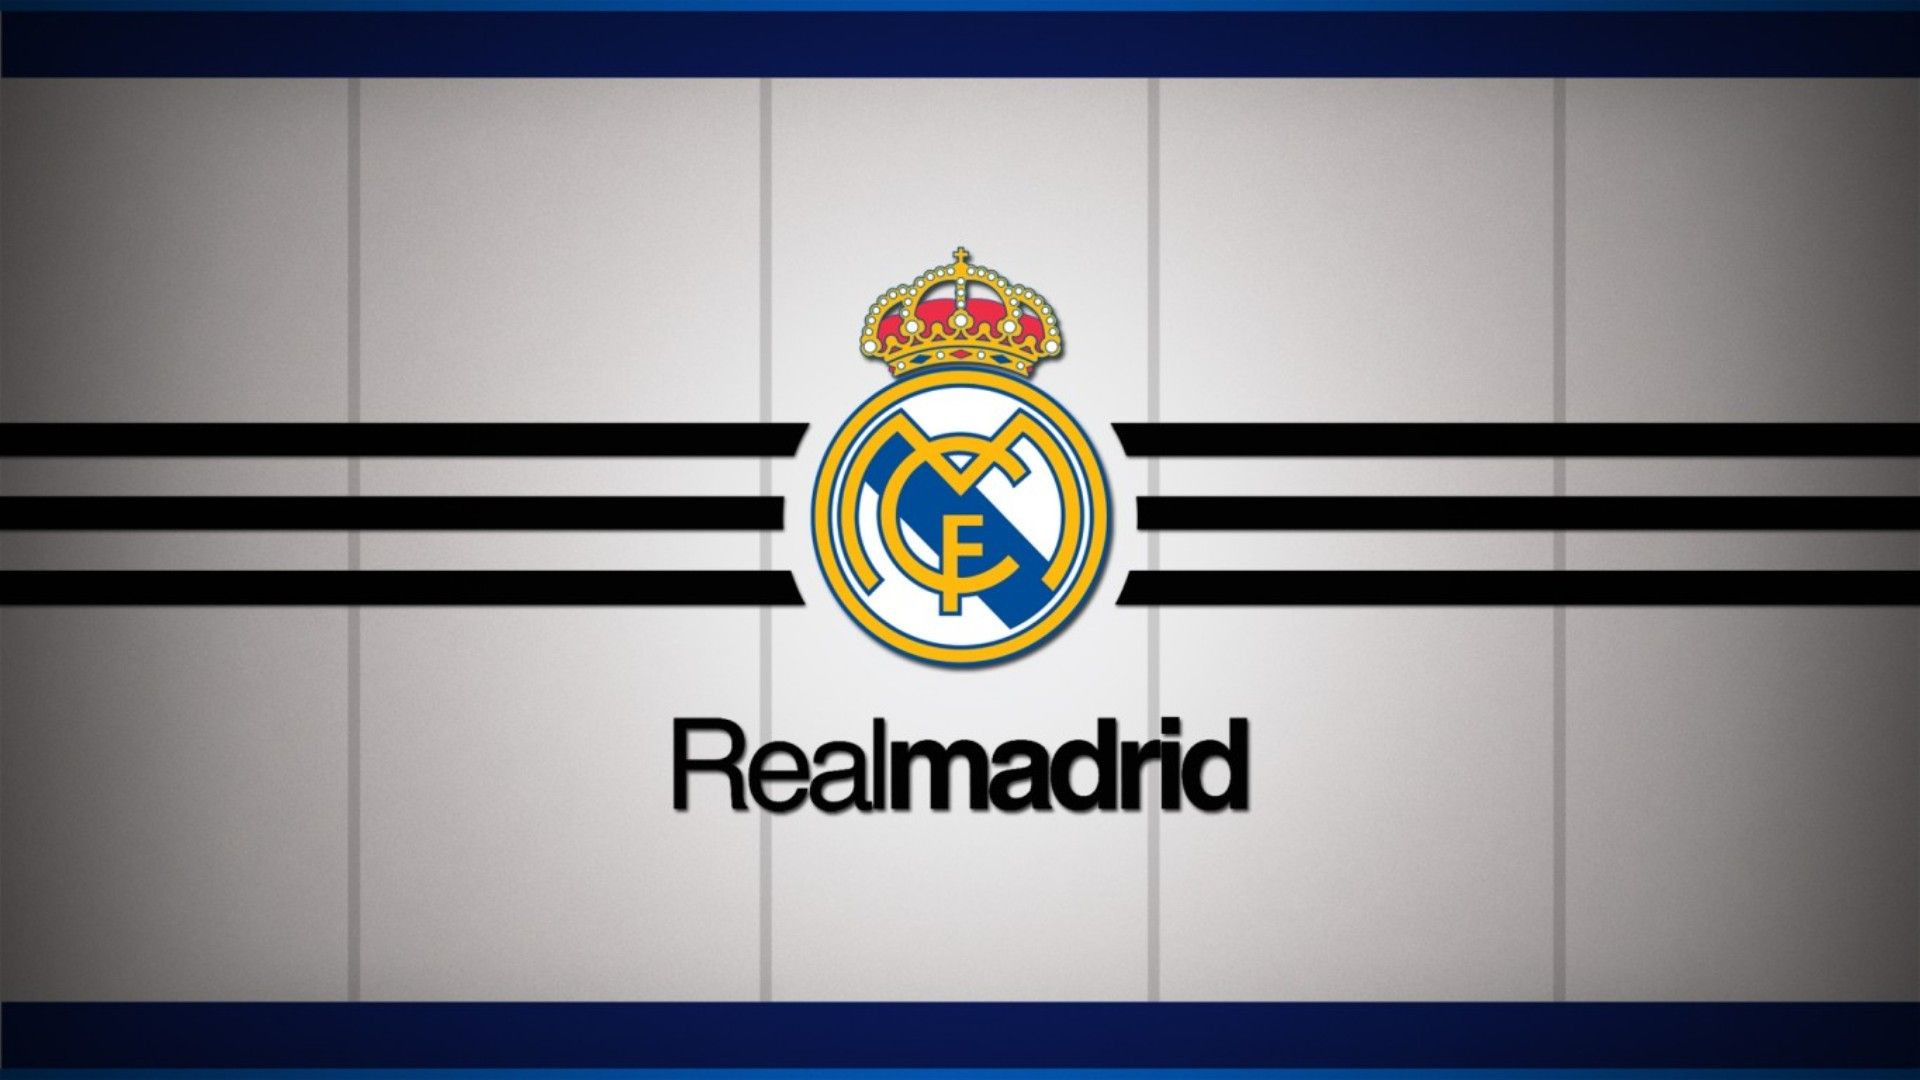 Best Free Live Wallpapers Iphone X Real Madrid Logo Wallpaper 1080p Real Madrid Pinterest